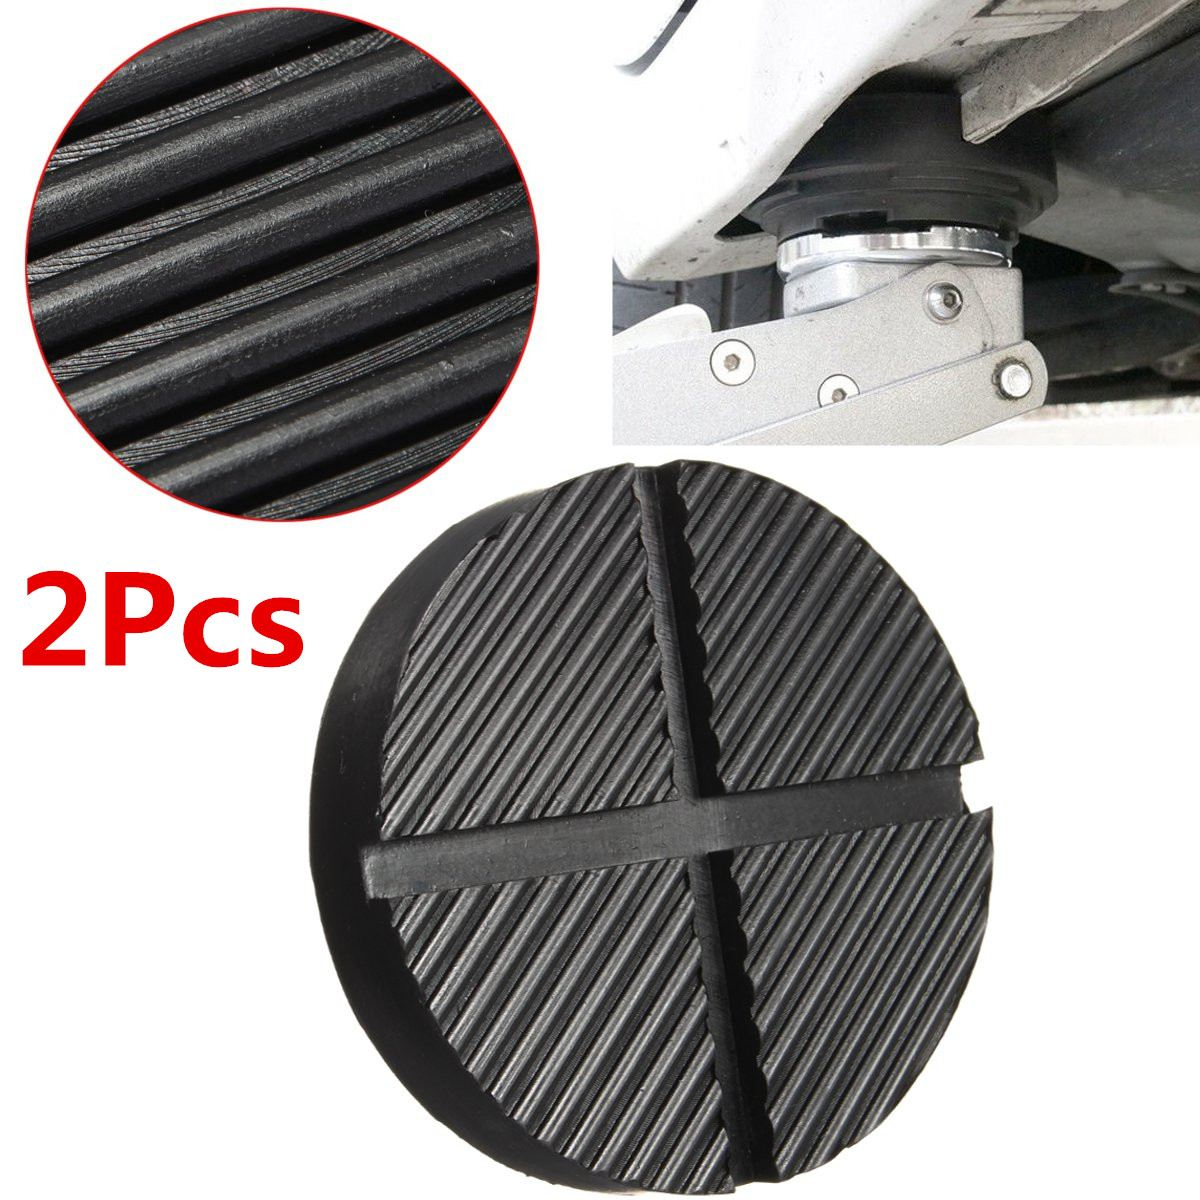 High Quality 2Pcs Black Rubber Car Truck Cross Slotted Frame Rail Floor Jack Disk Pad Ad ...